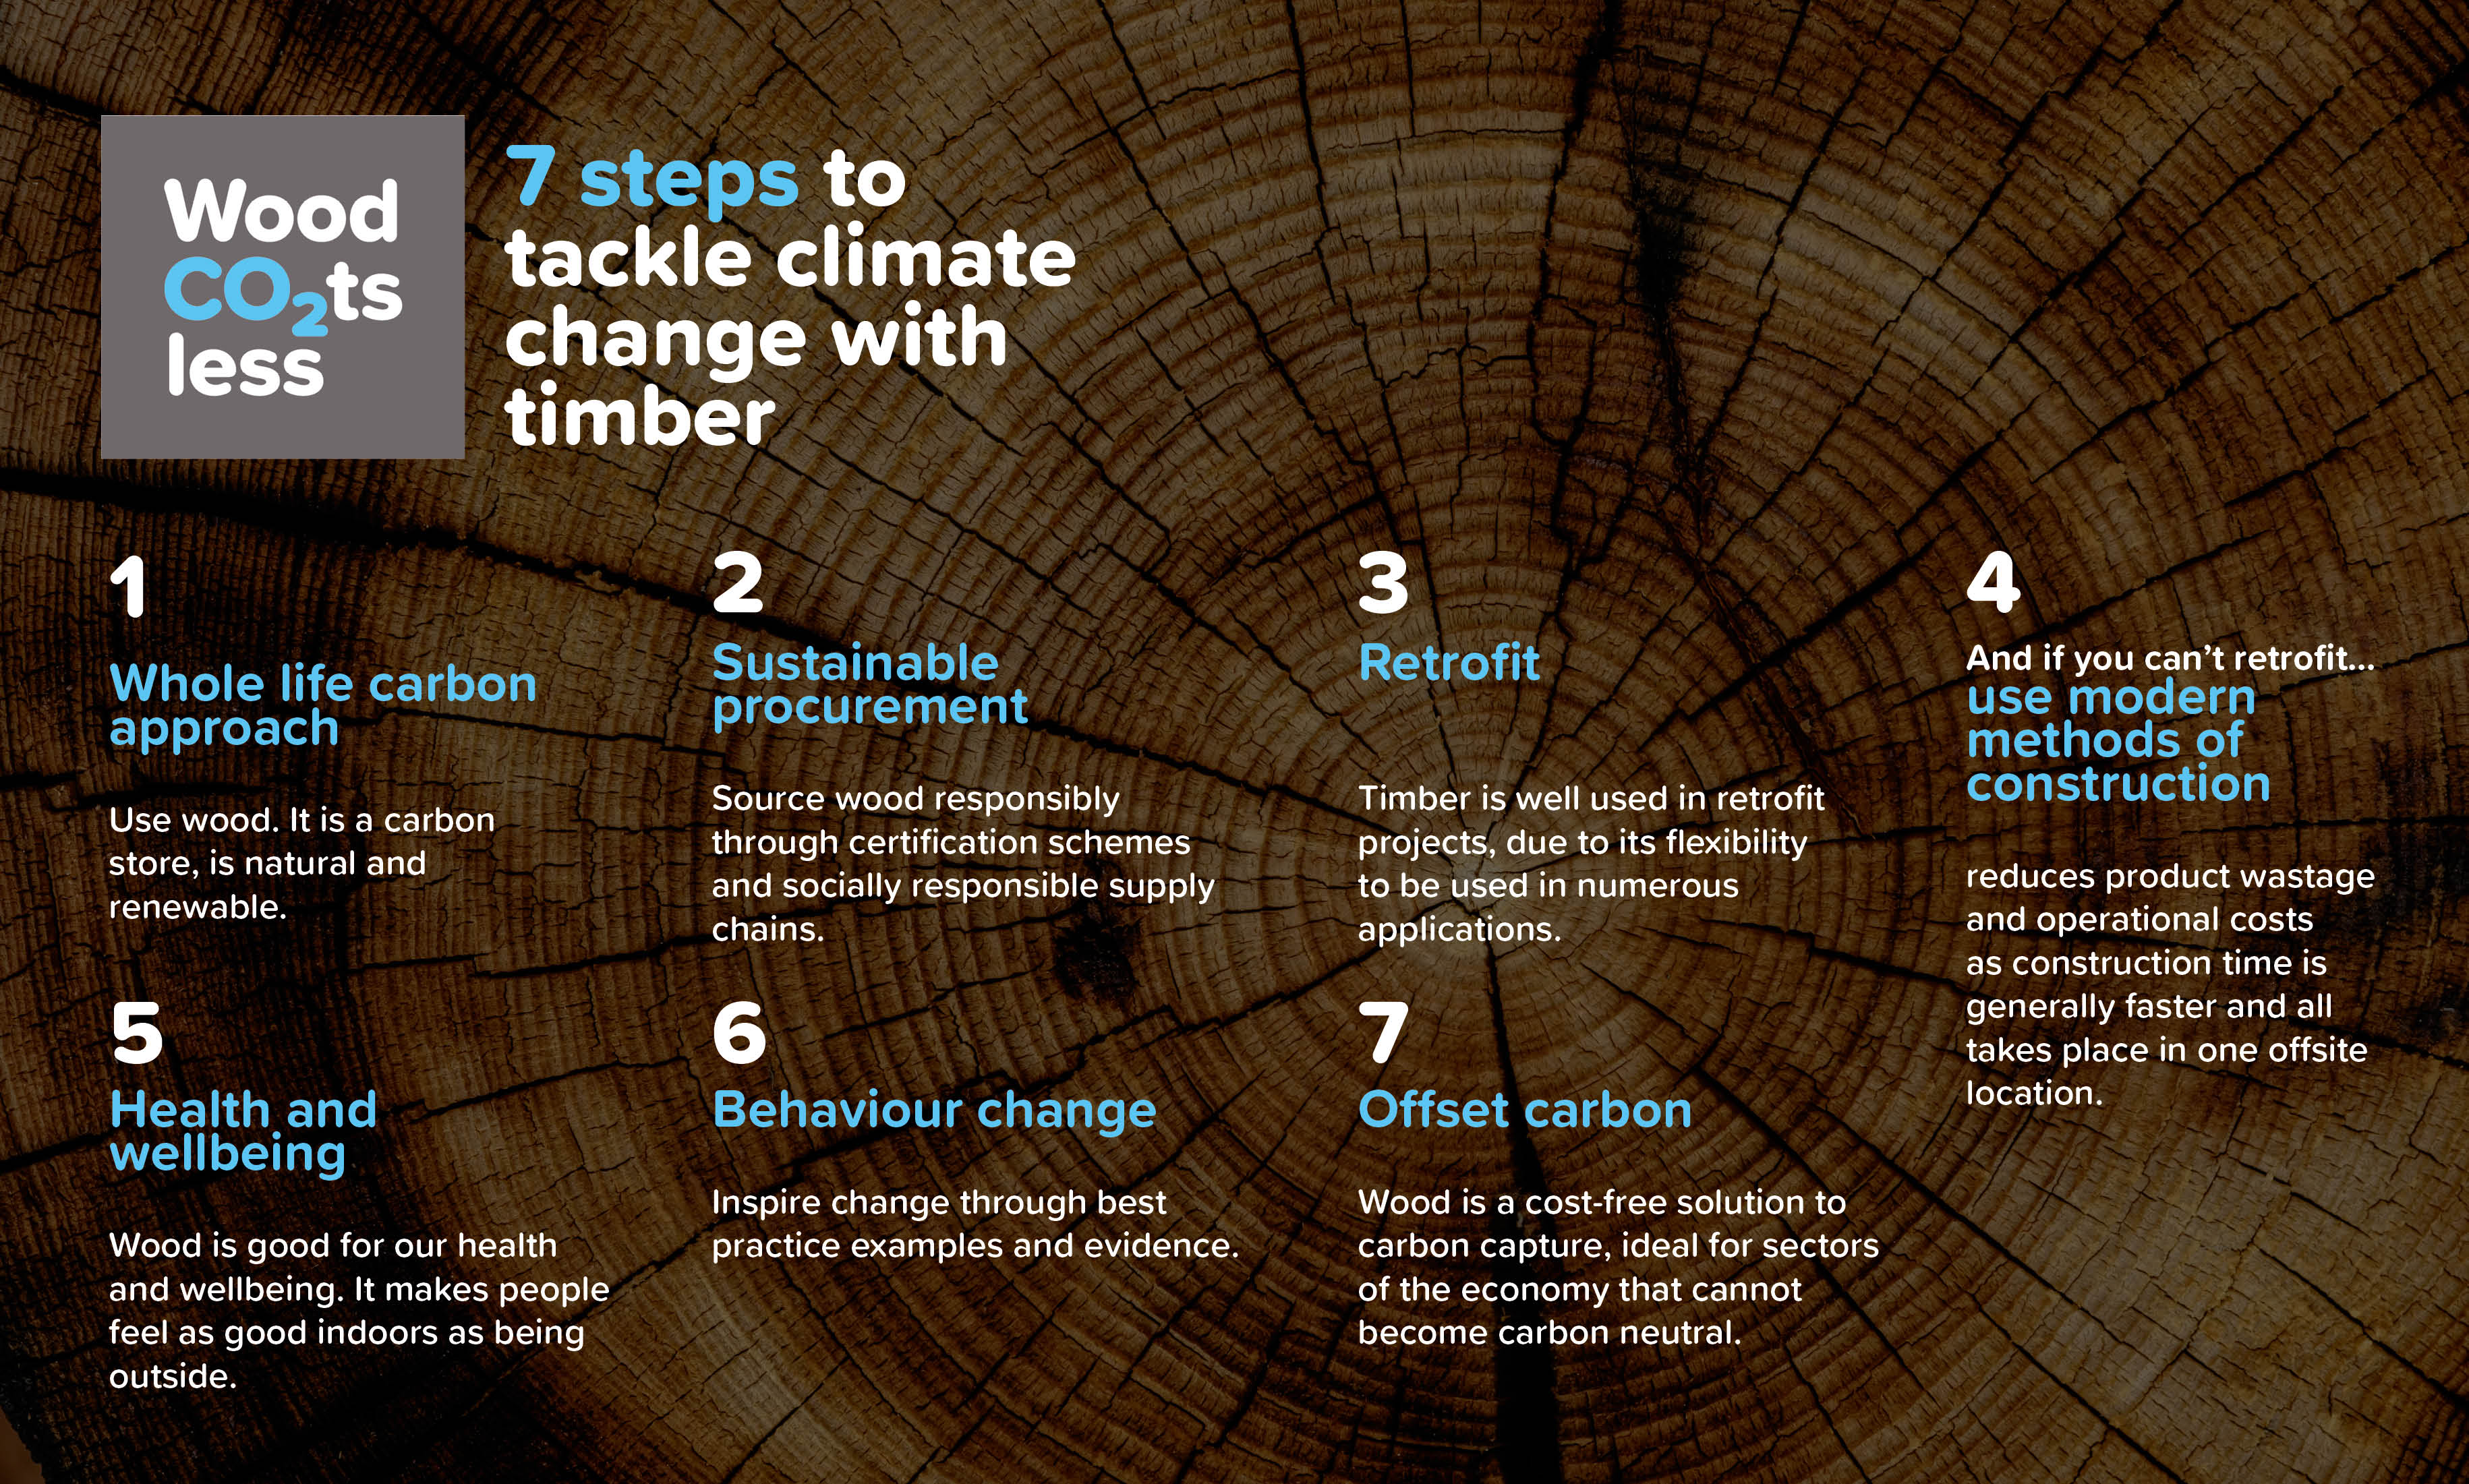 Image explaining '7 steps to tackle climate change with timber' all steps relate to above content